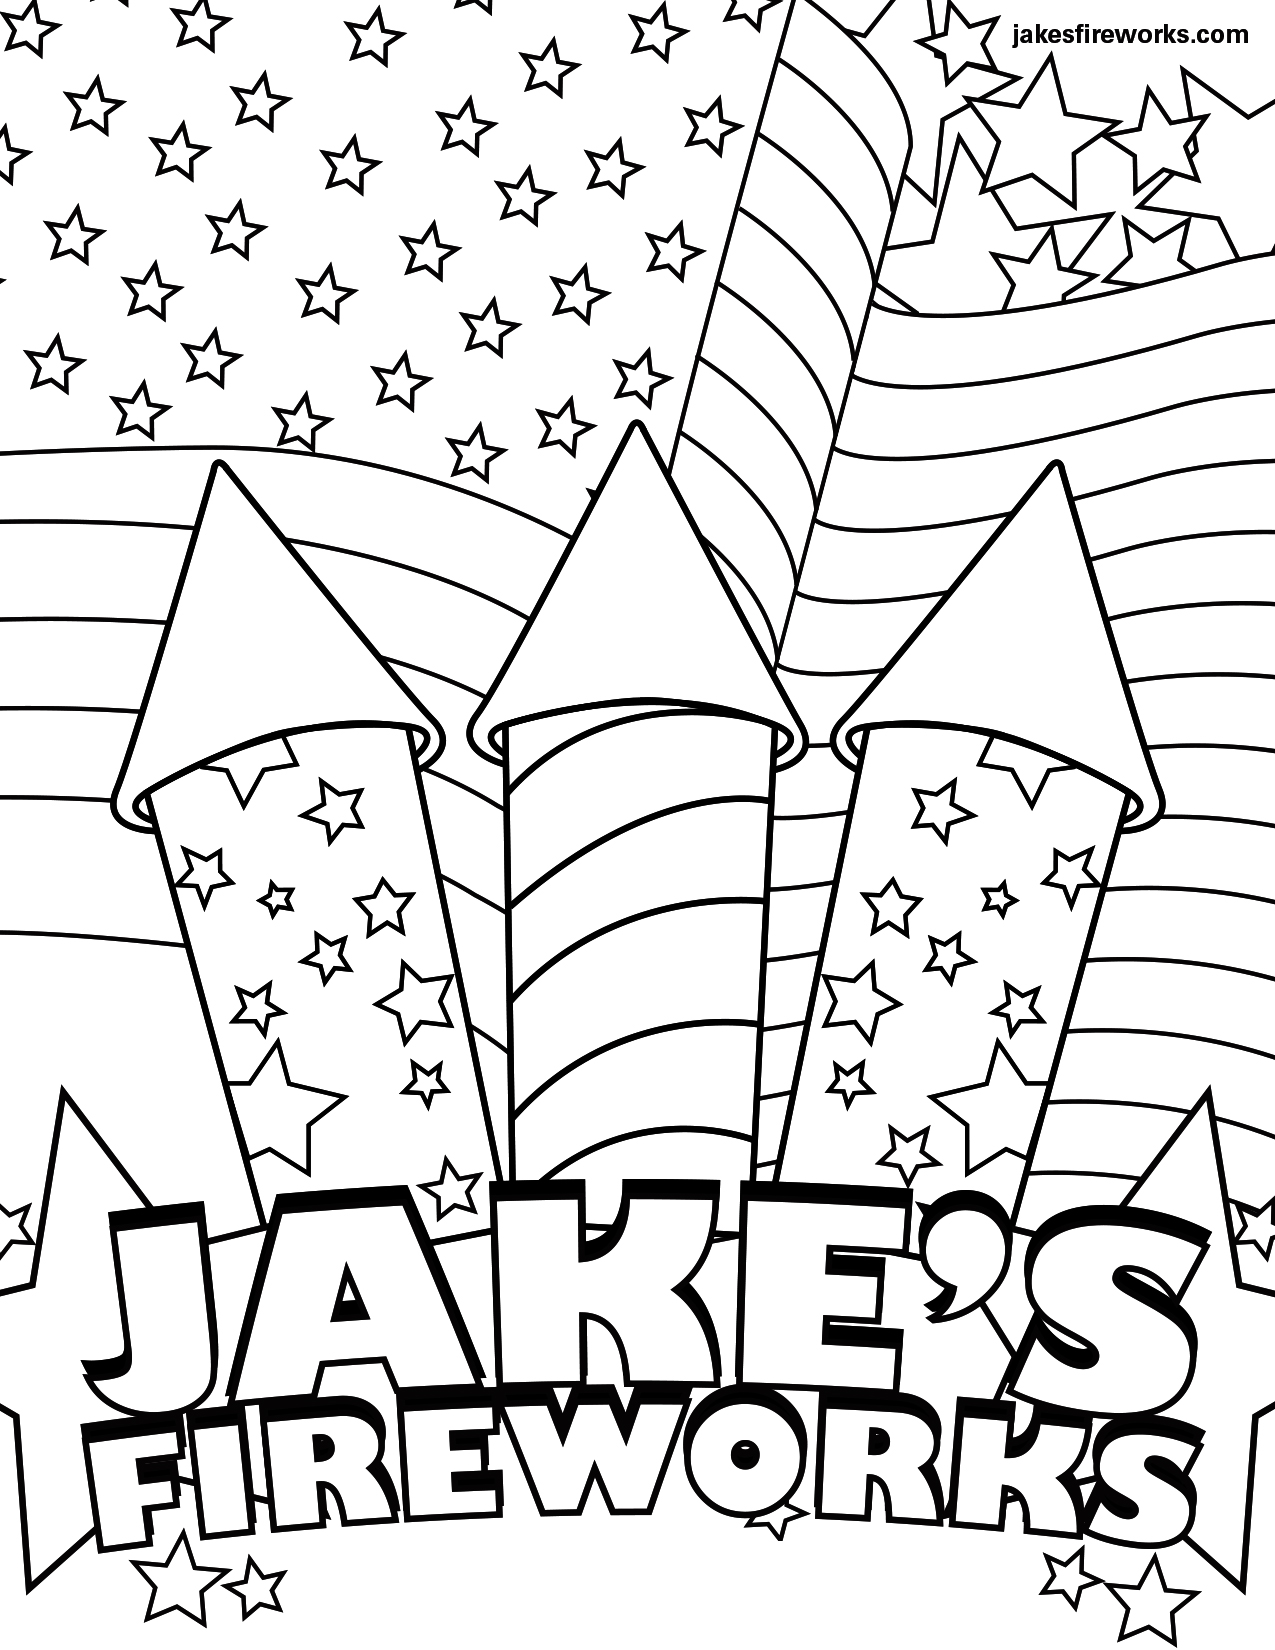 fireworks coloring page free printable fireworks coloring pages for kids page coloring fireworks